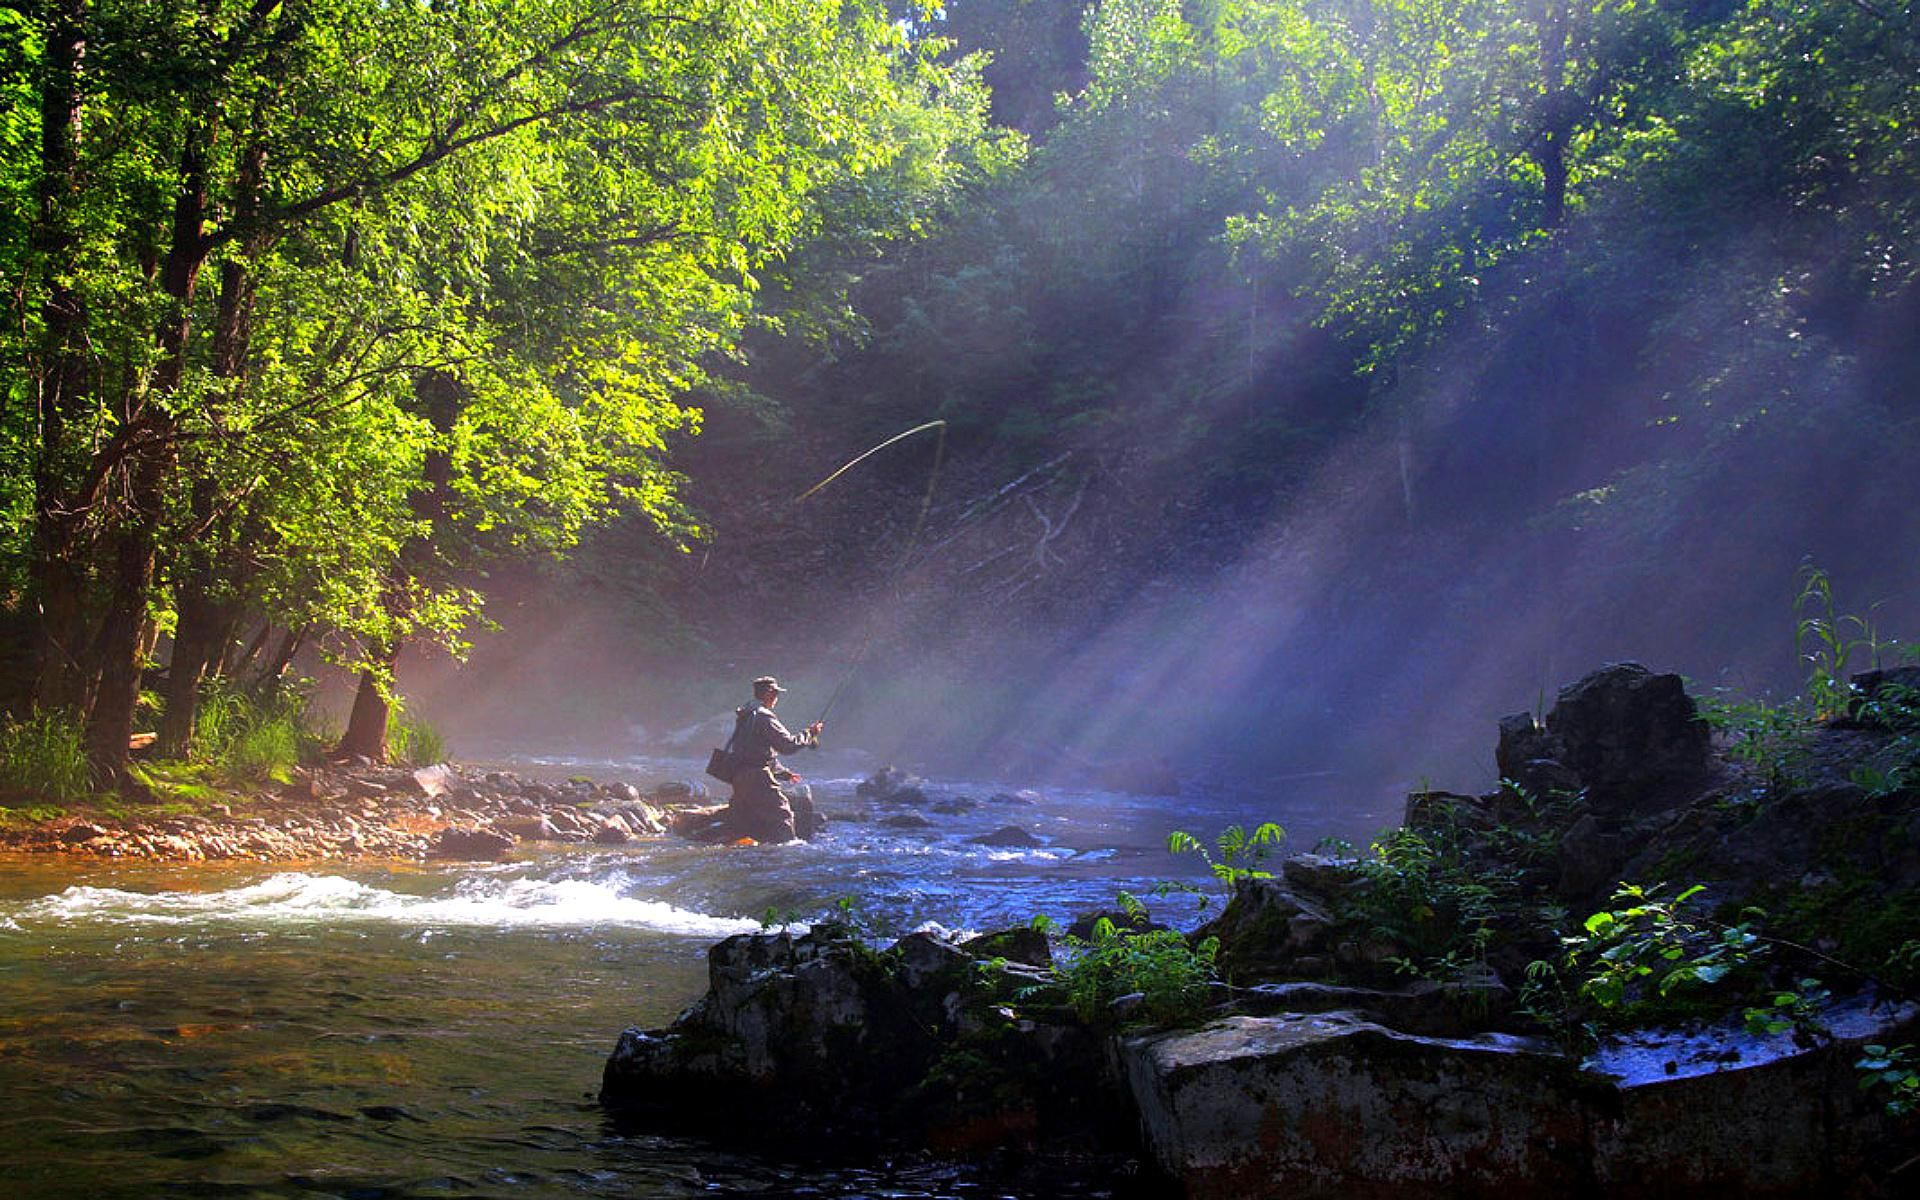 Blue Nile Falls Wallpaper Fly Fishing In A River 137378 High Quality And